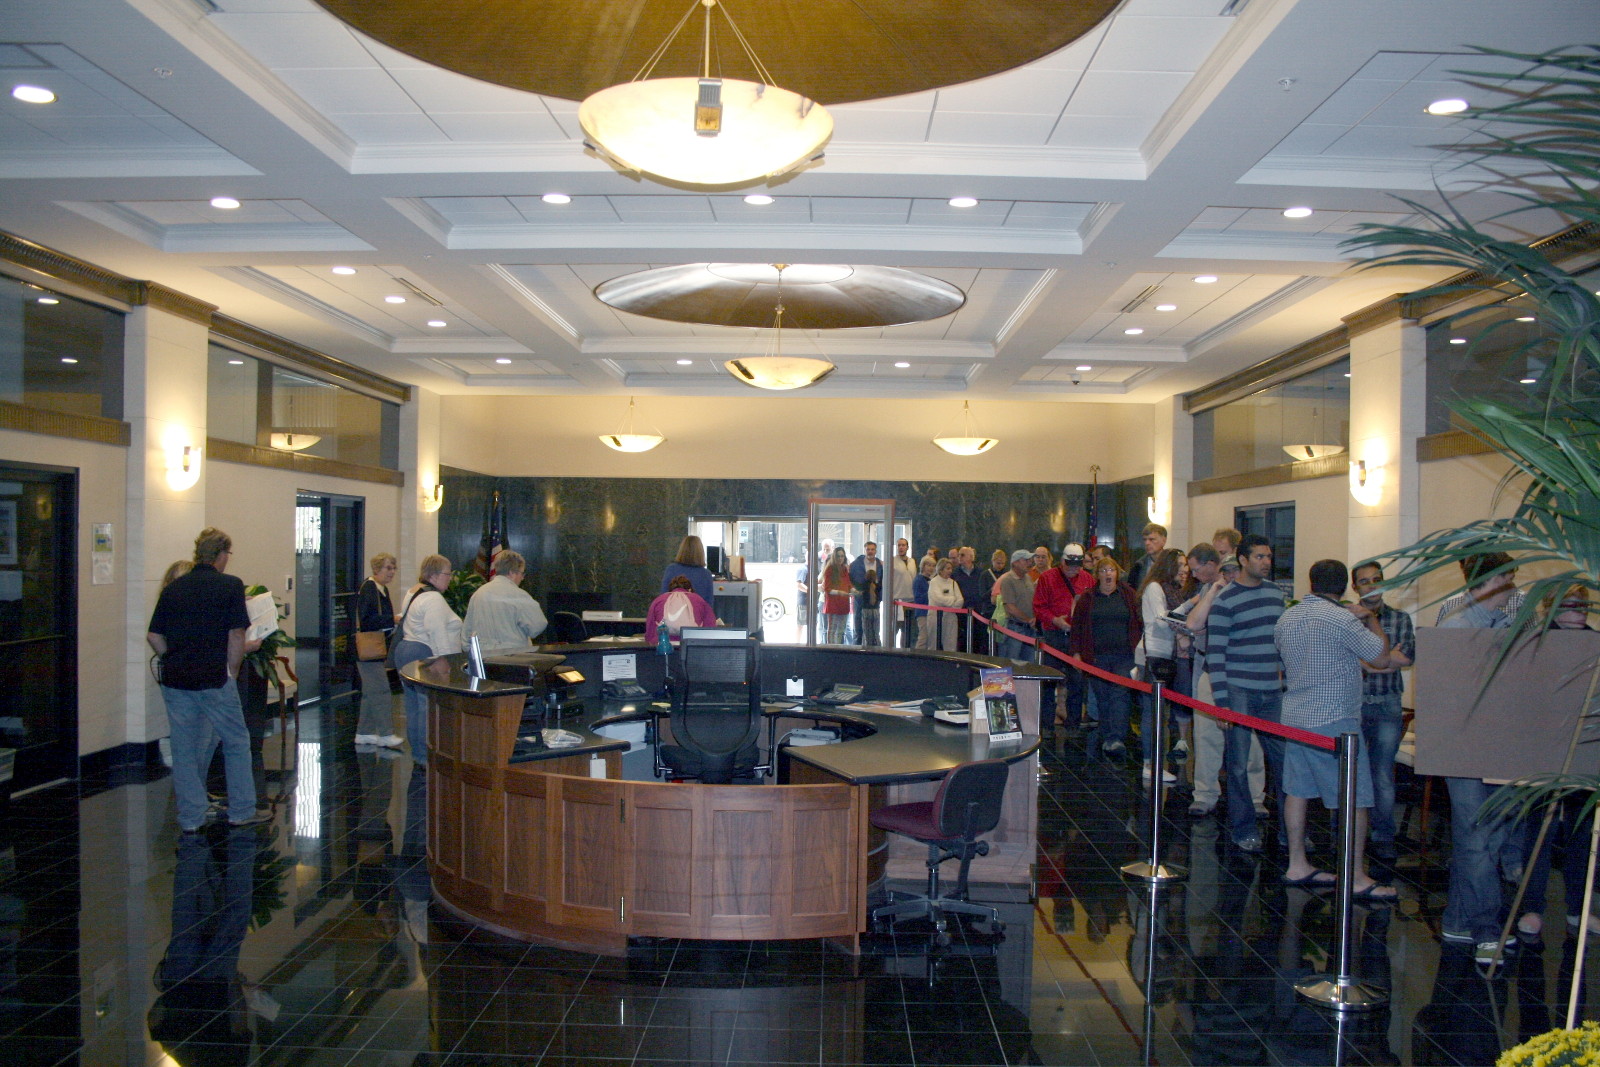 Lobby of the Wisconsin Gas Building.